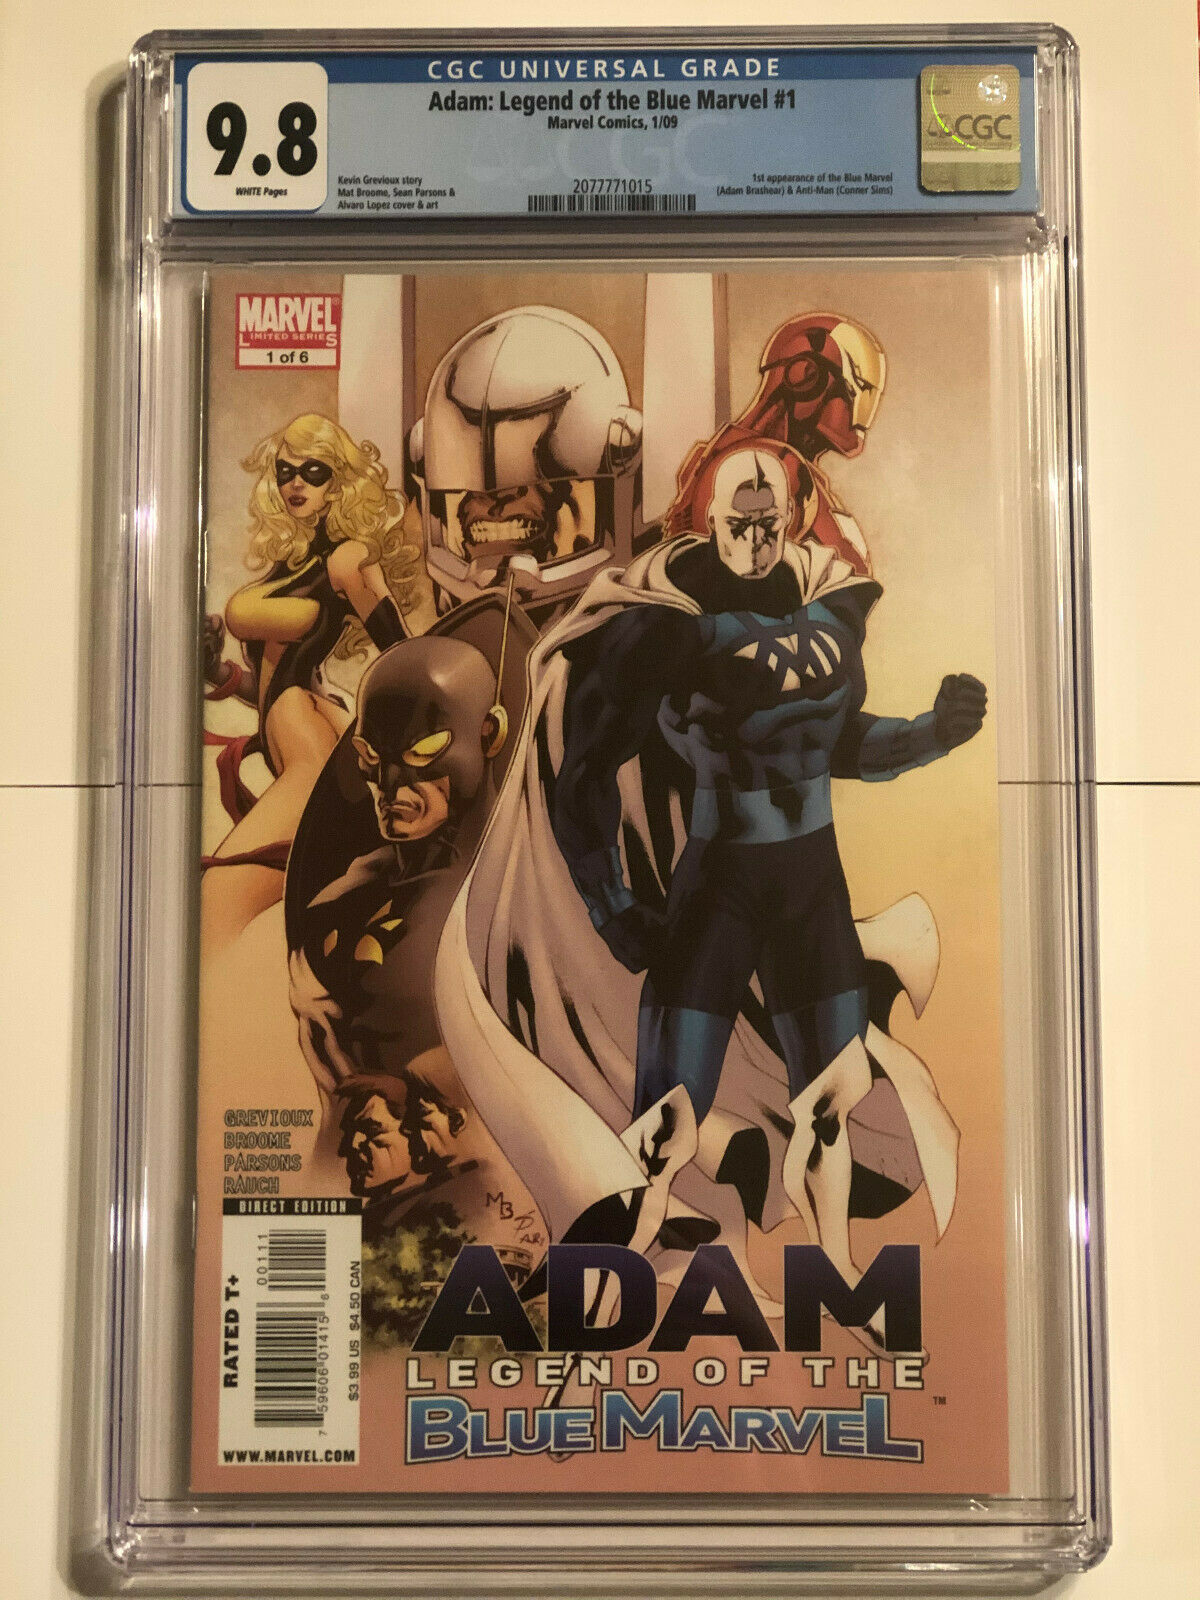 ADAM LEGEND OF THE BLUE MARVEL 1 CGC 98 NMMT 1ST APPEARANCE 2009 2077771015